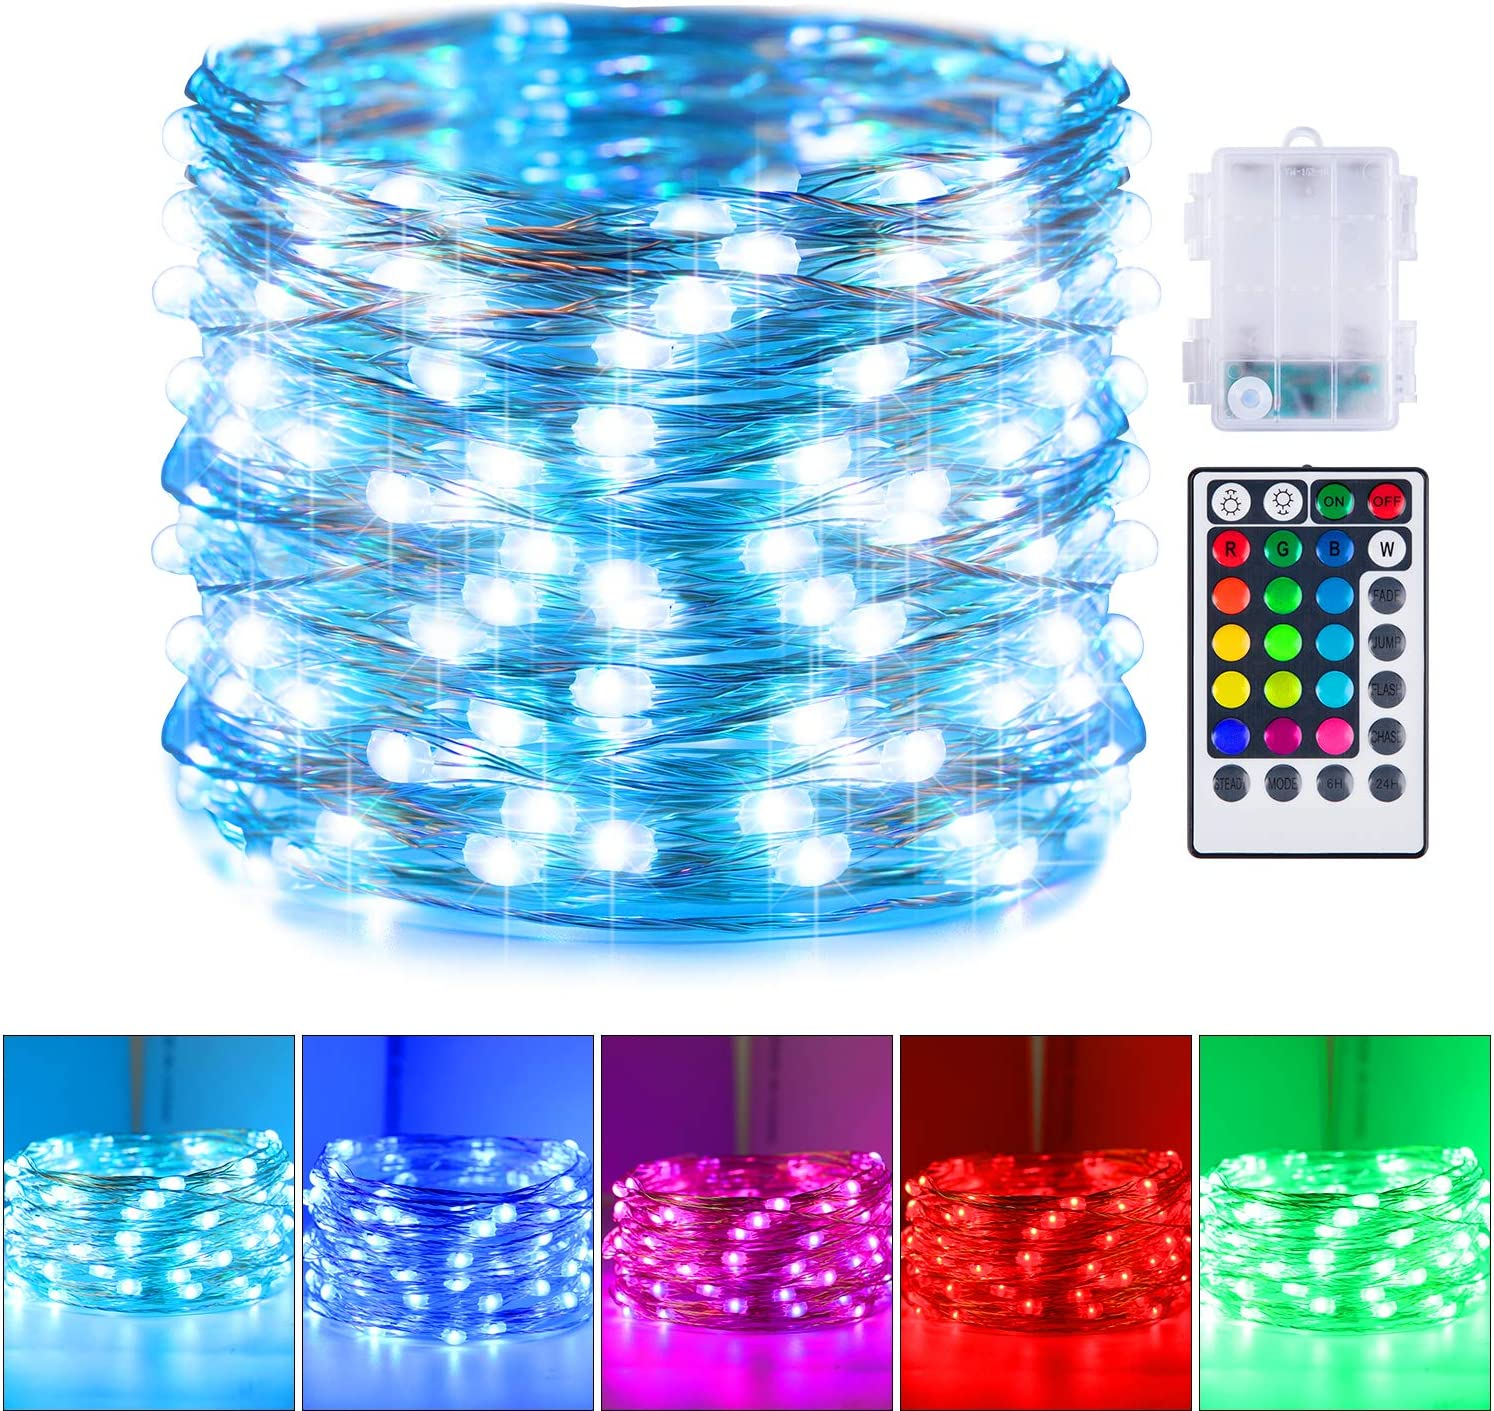 16 Color Changing Fairy Lights, Battery Operated Twinkle Lights with Remote and 8 Light Modes Waterproof 3AA Battery Case, String Lights for Bedroom Wedding Party Christmas Halloween, 33 Feet 100 Leds